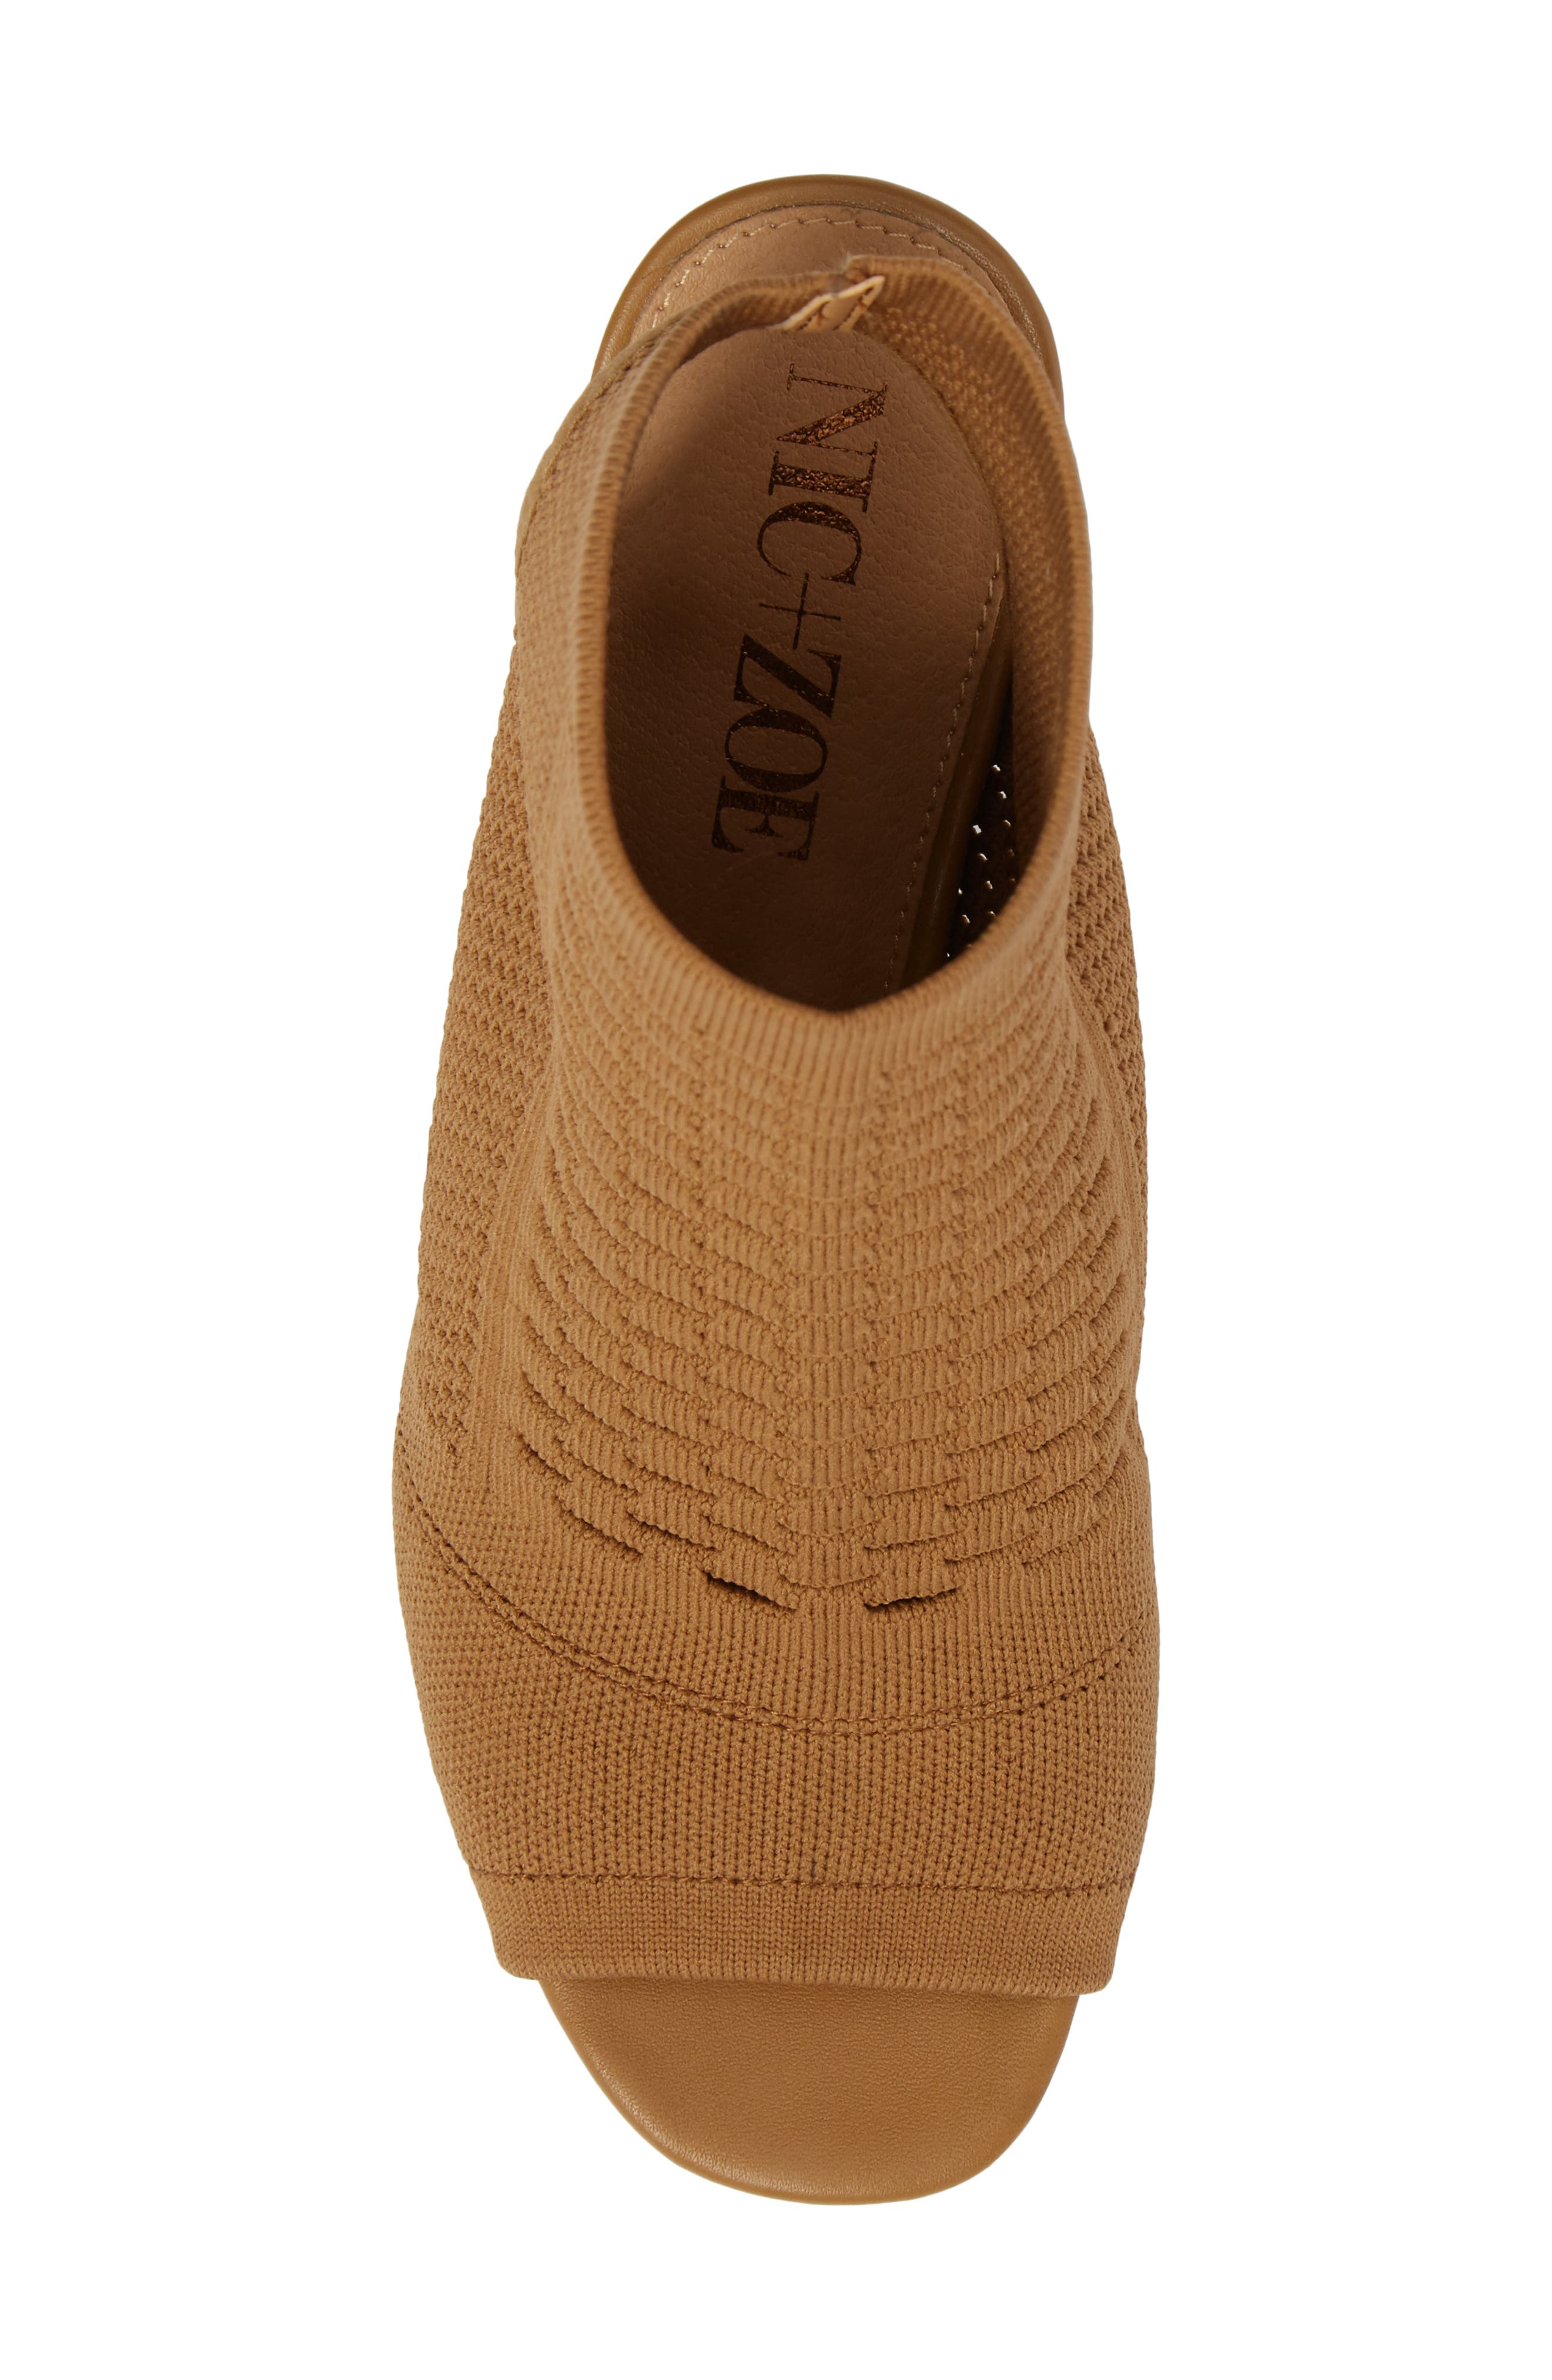 Priya Knit Bootie,                             Alternate thumbnail 5, color,                             Fawn Knit